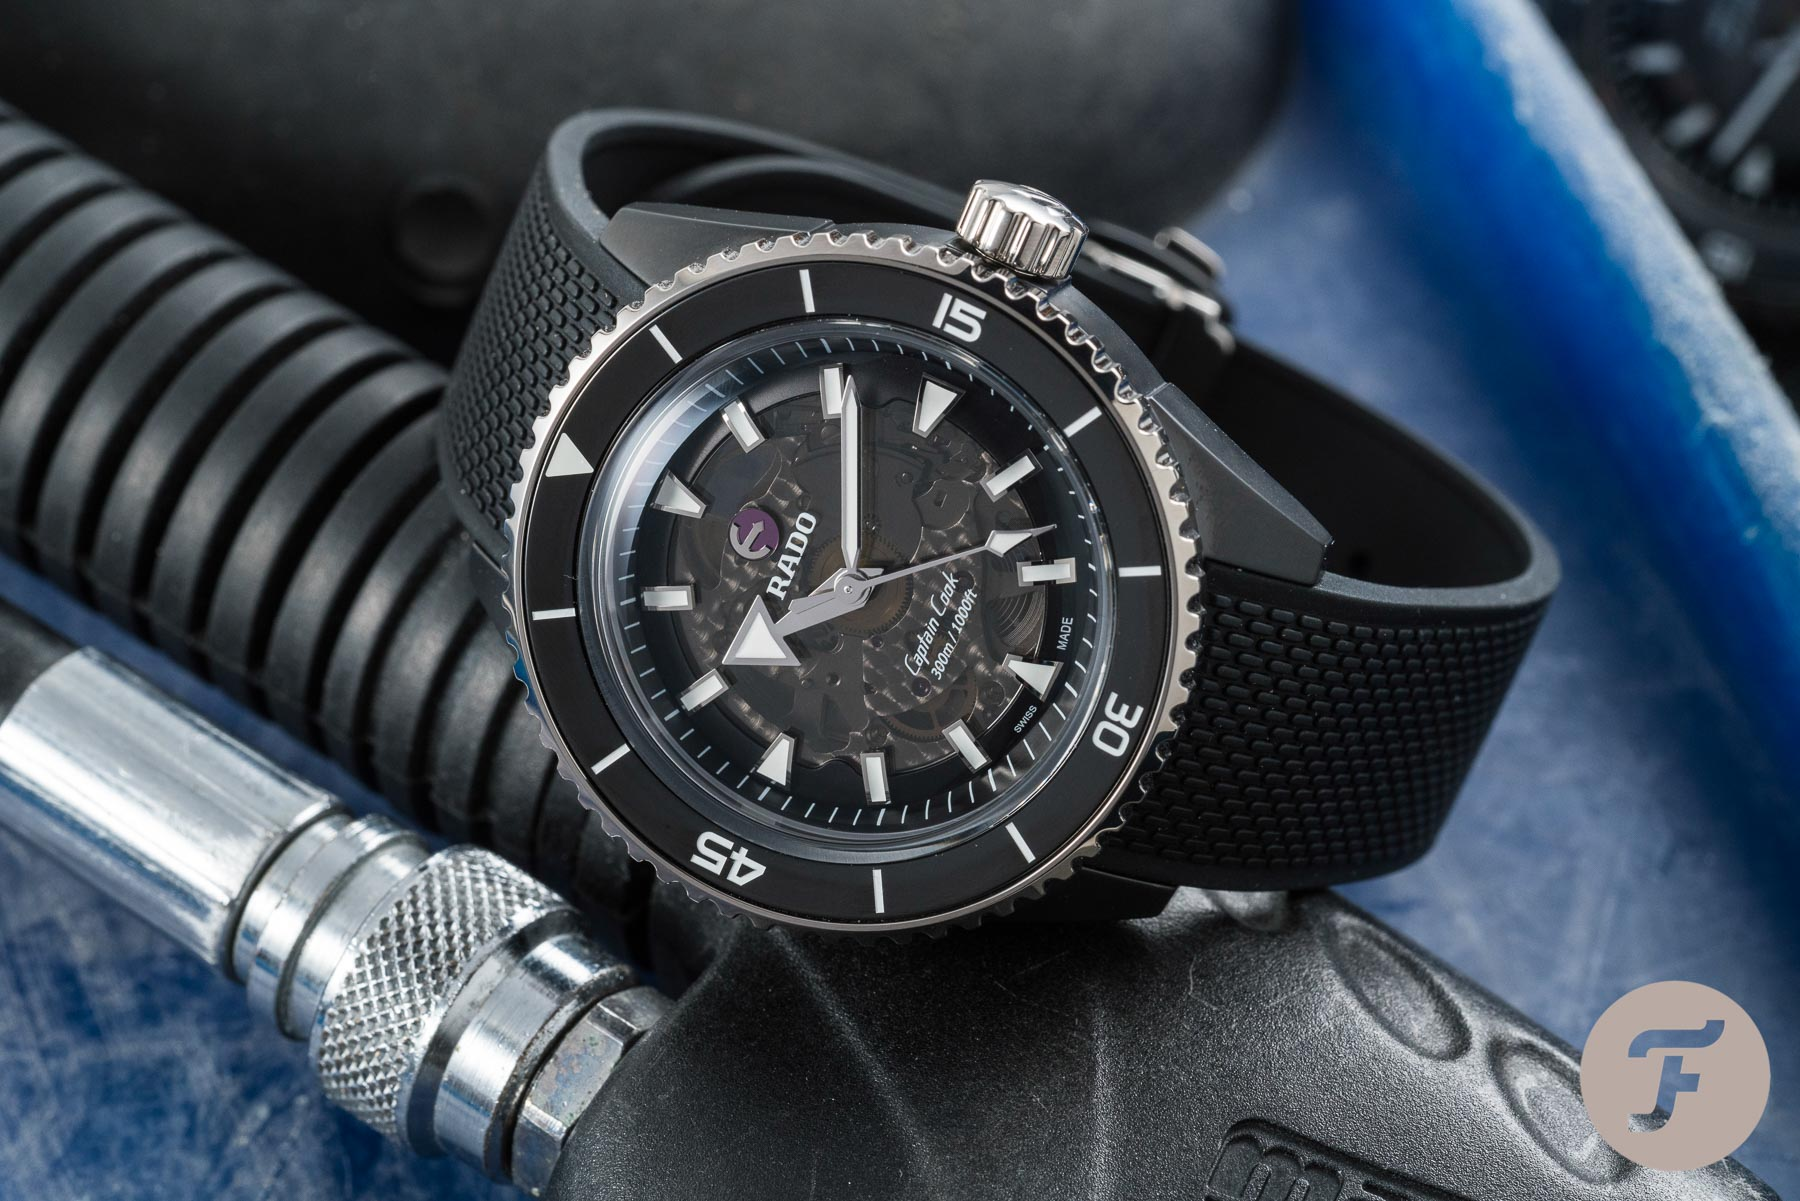 Hands-On With The RADO Captain Cook High-Tech Ceramic